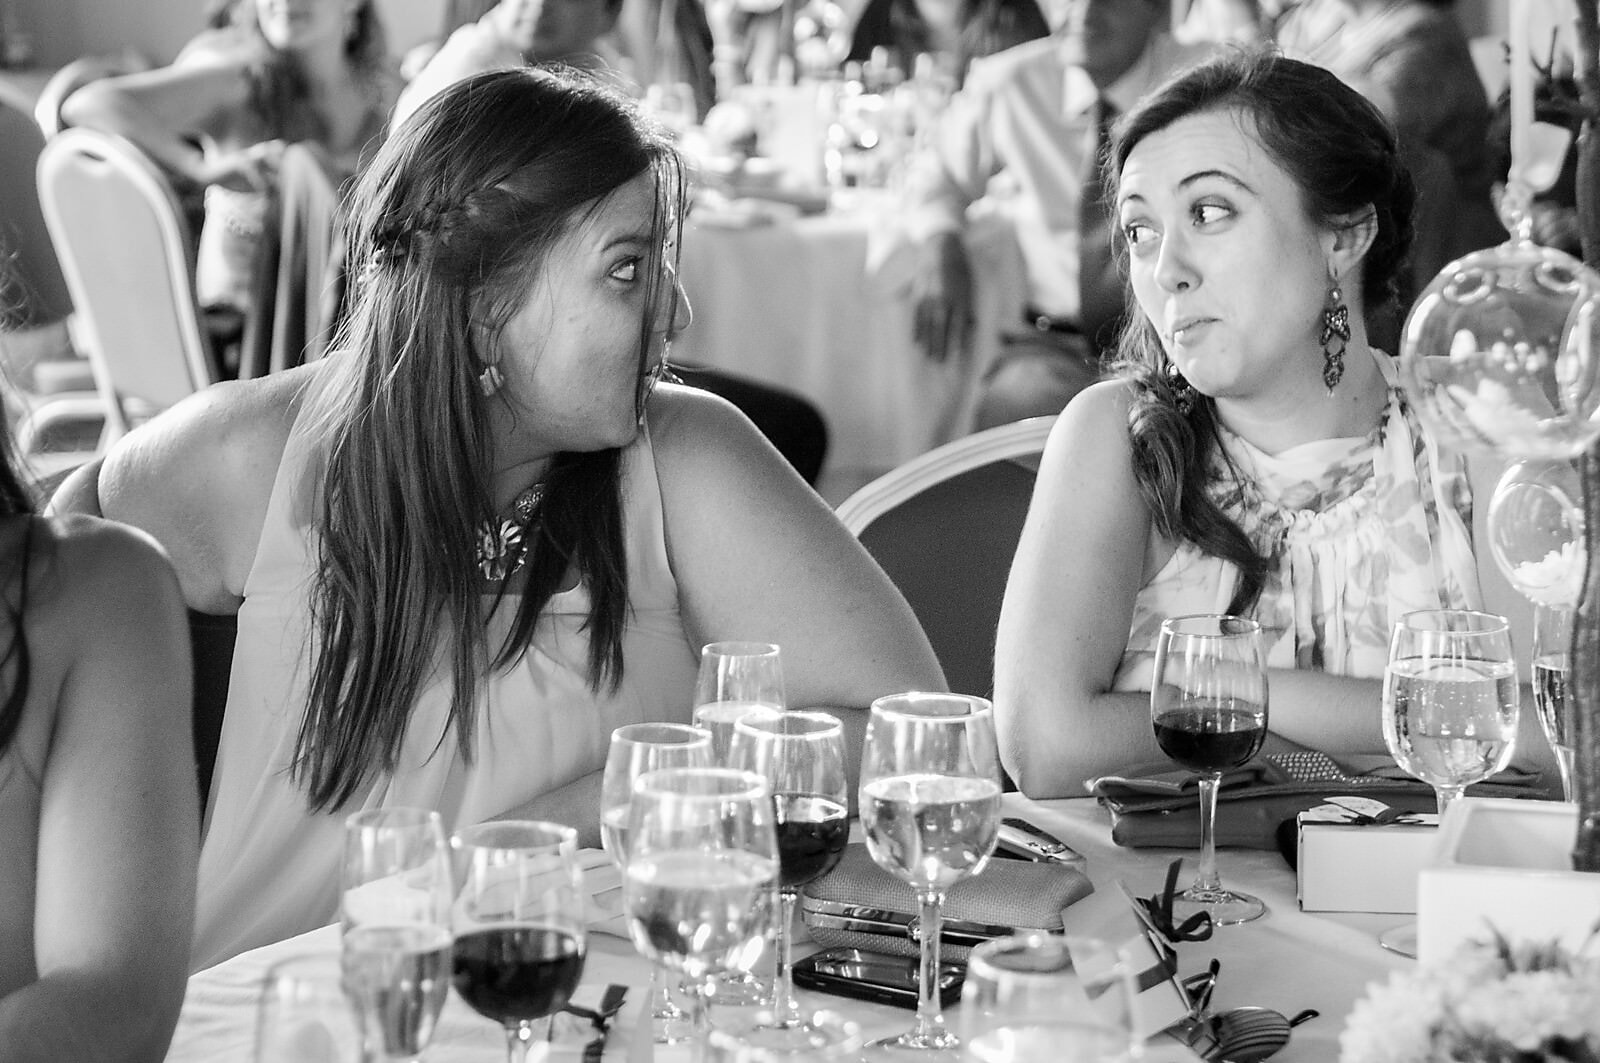 Wedding guests react surprised to the wedding speeches